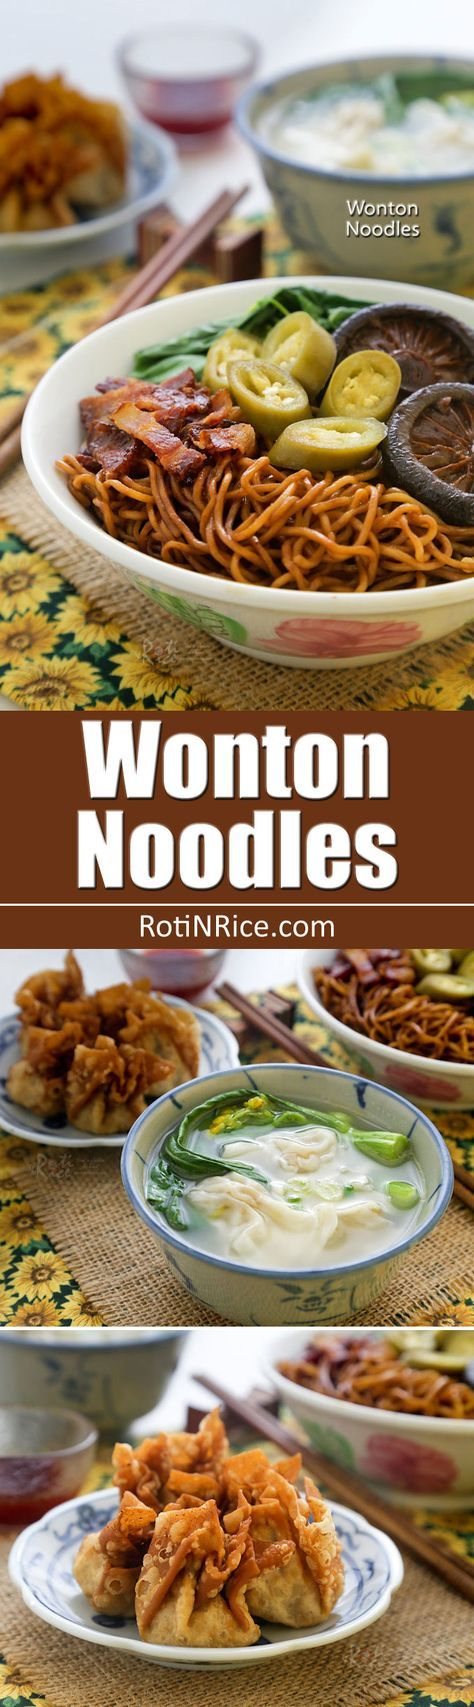 Blue apron wonton noodles - Dry Style Wonton Noodles Tossed In A Dark Soy Sauce Dressing Served With Wontons Braised